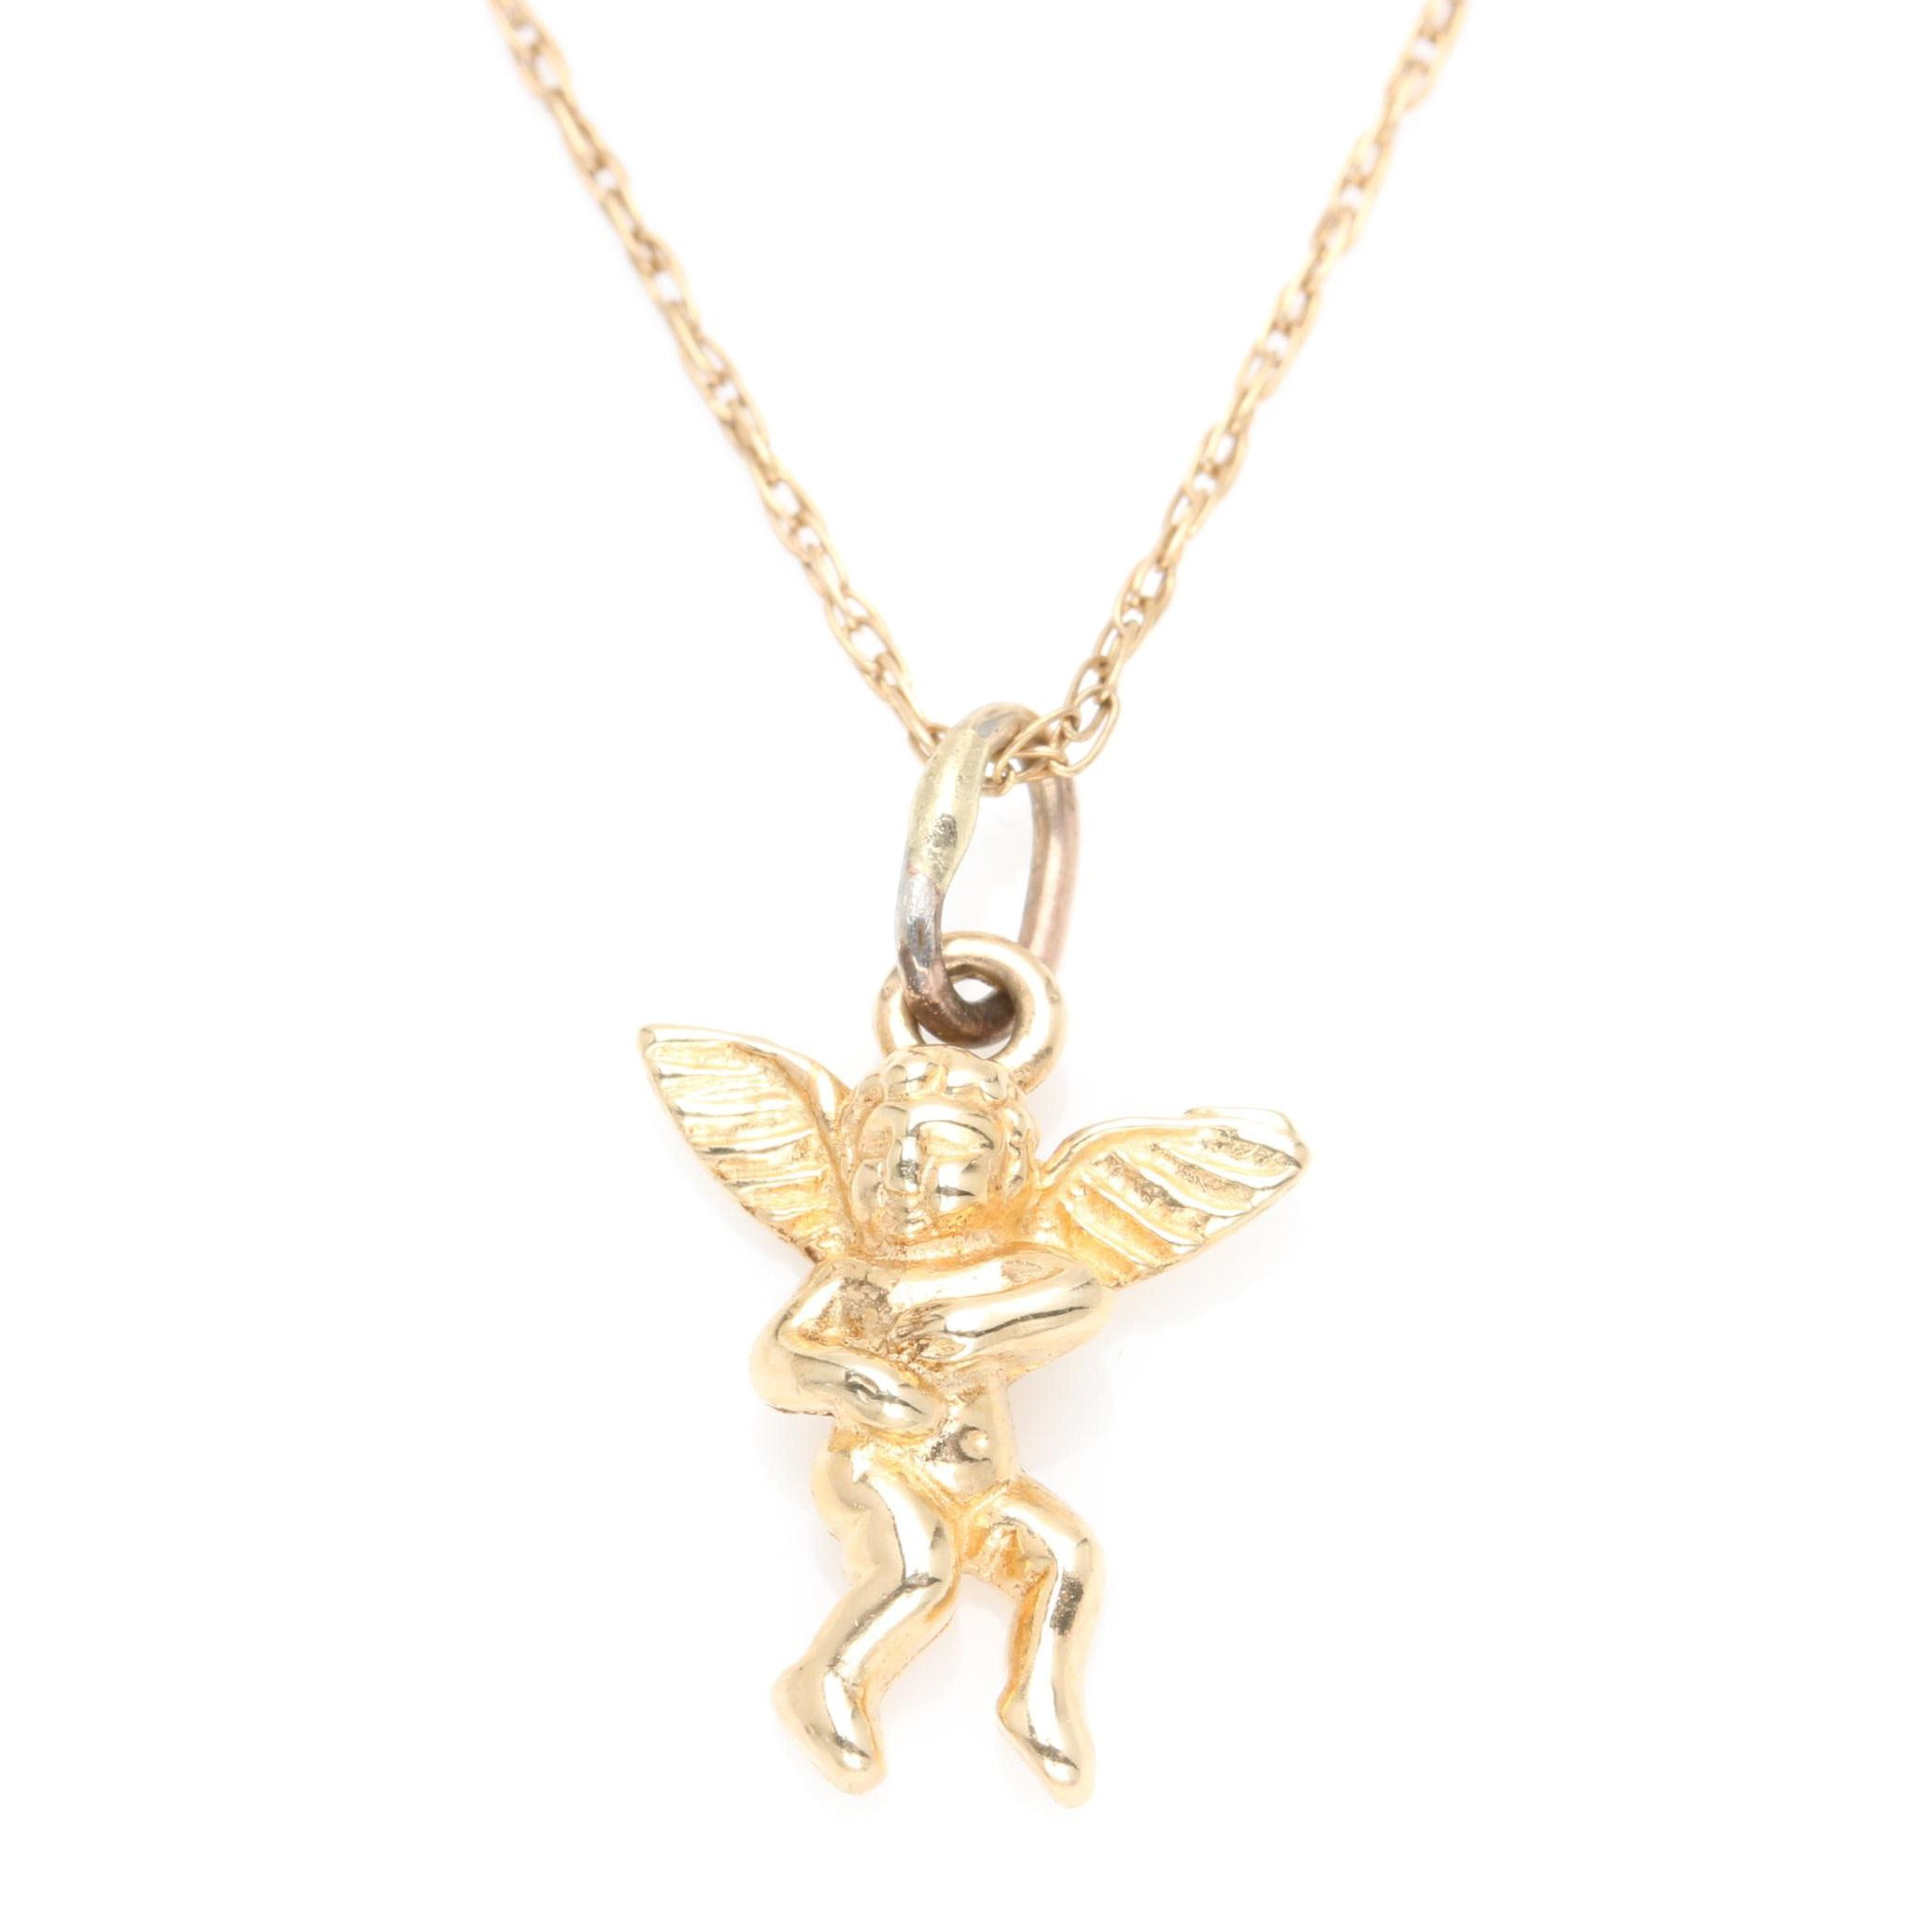 14K Yellow Gold Cherub Pendant Necklace